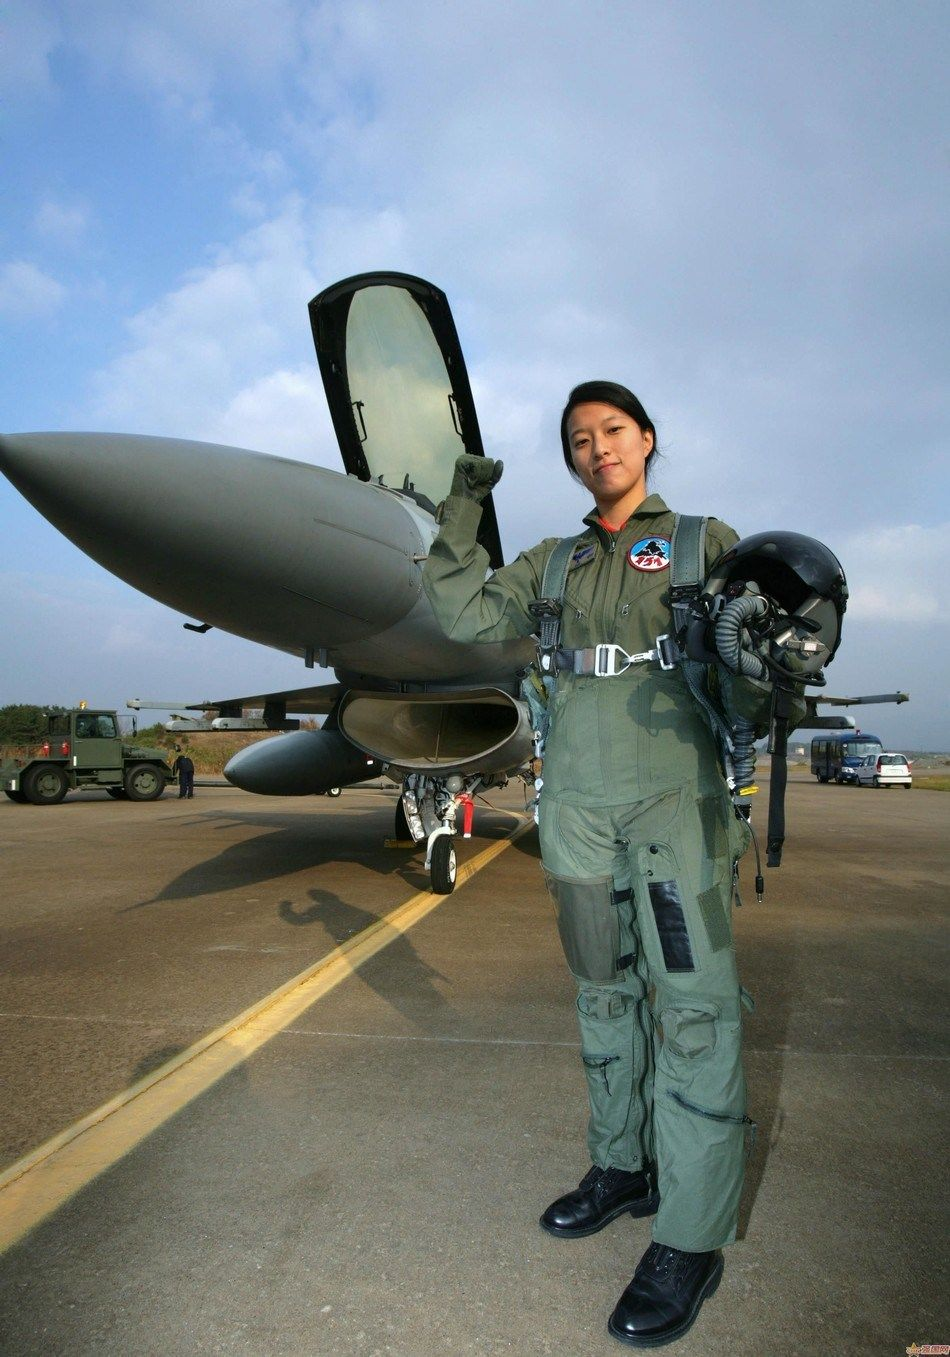 female fighter pilots Google Search Flying objects